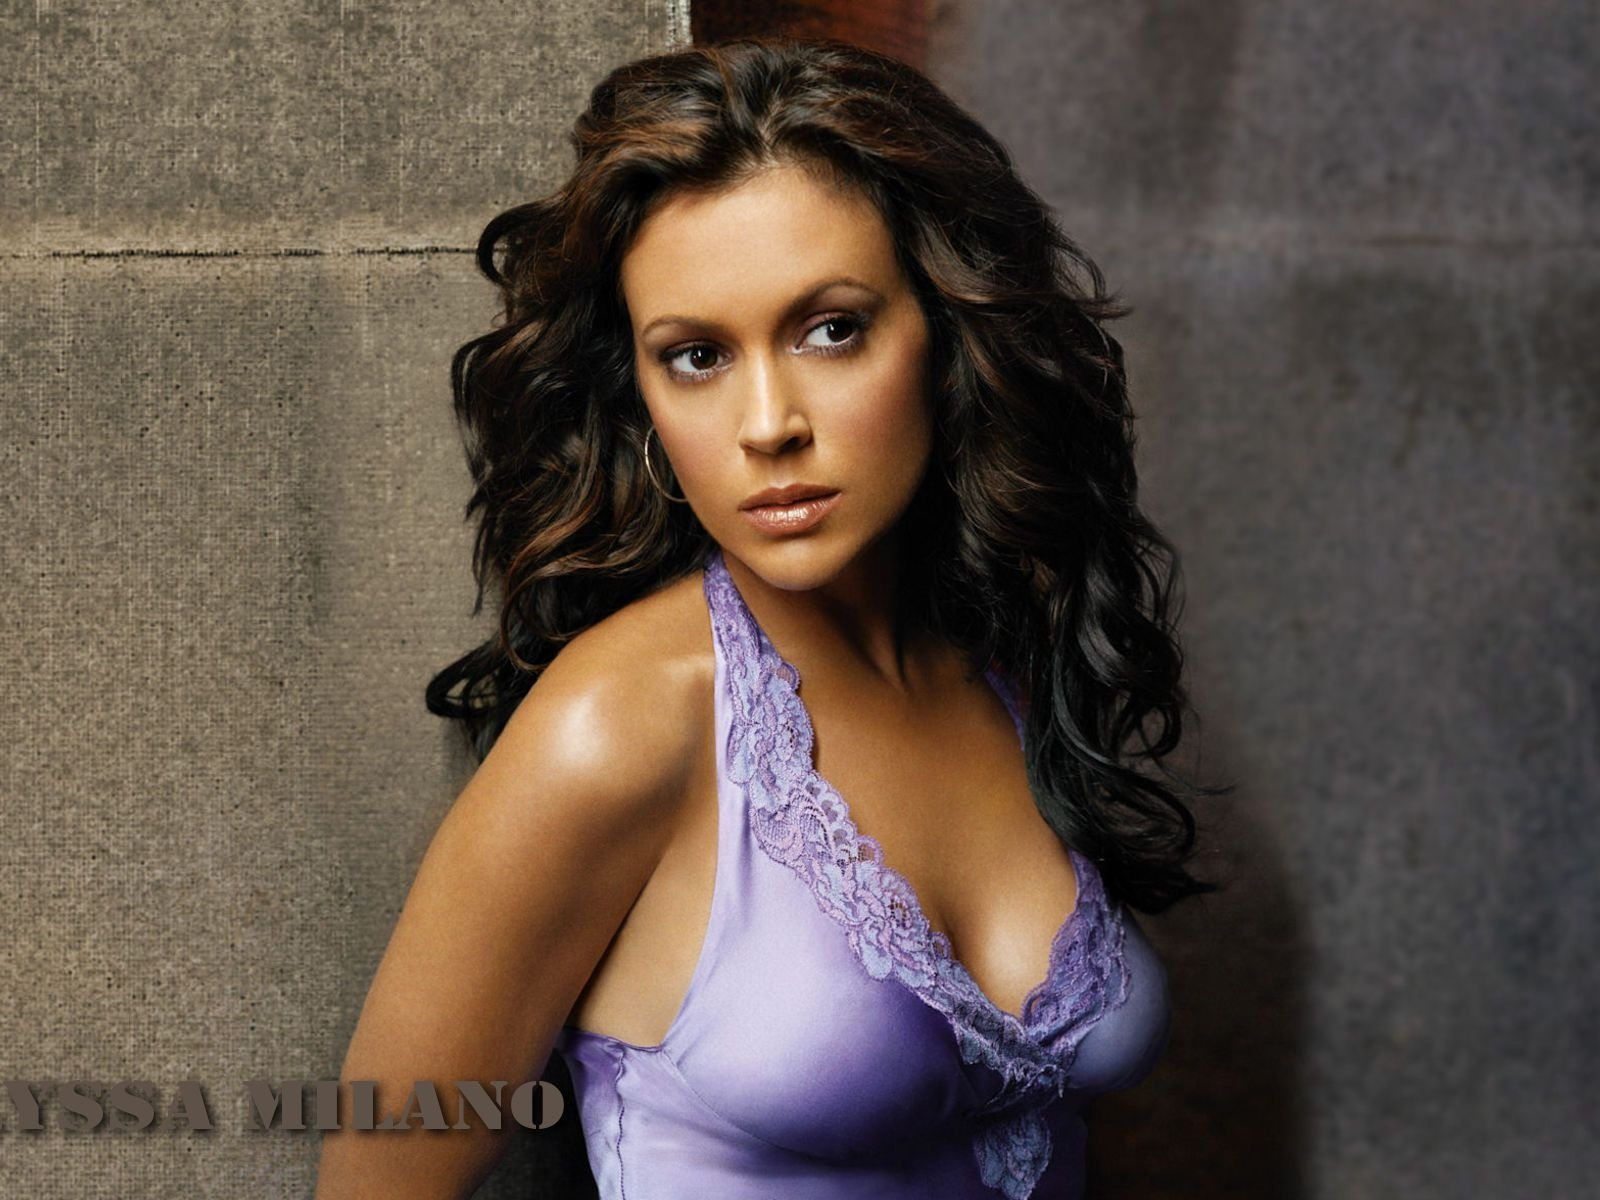 Alyssa Milano #030 - 1600x1200 Wallpapers Pictures Photos Images